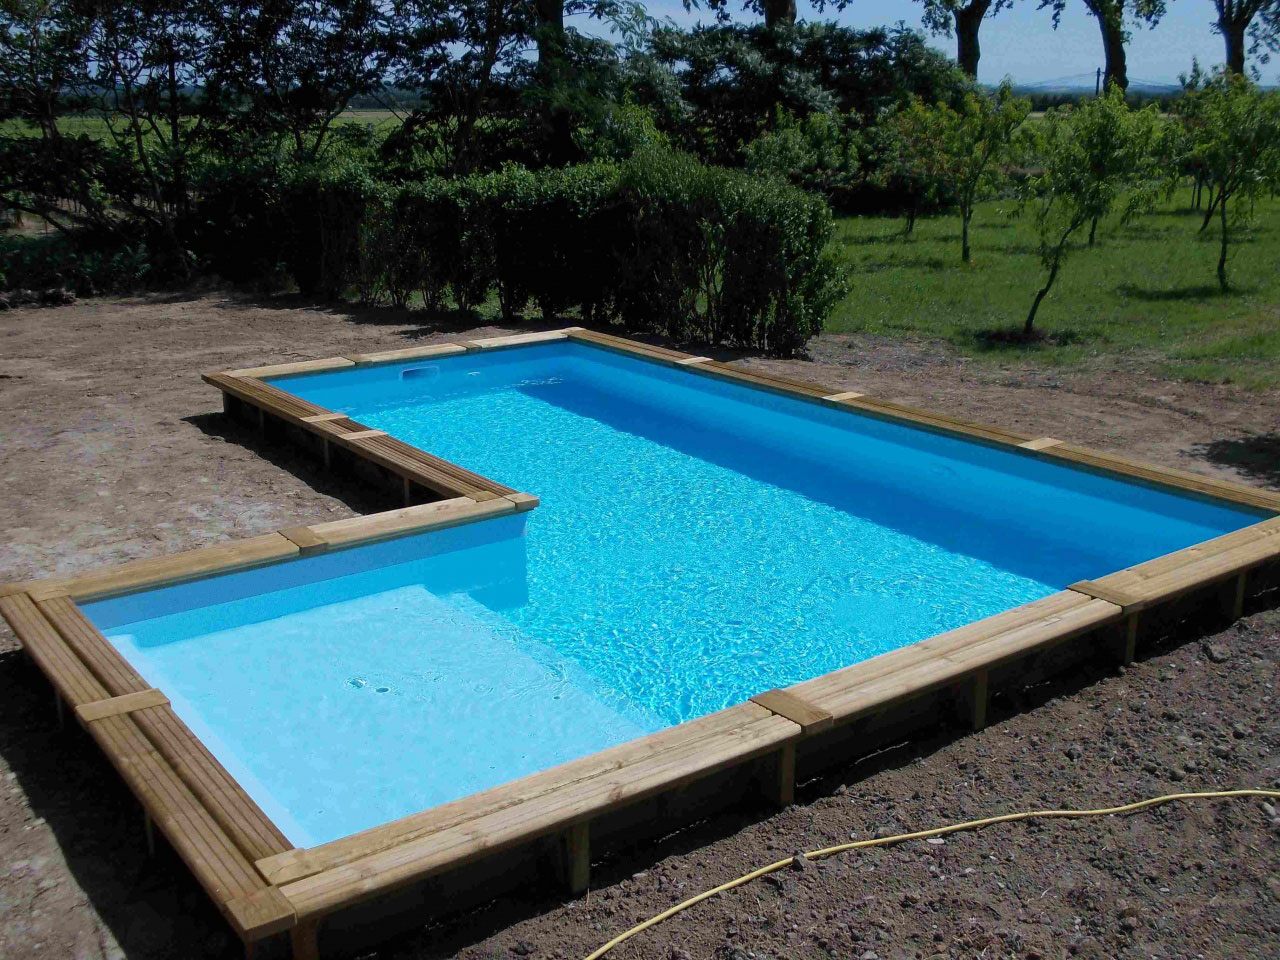 Piscine en bois promo finest piscine bois with piscine en for Promo piscine hors sol